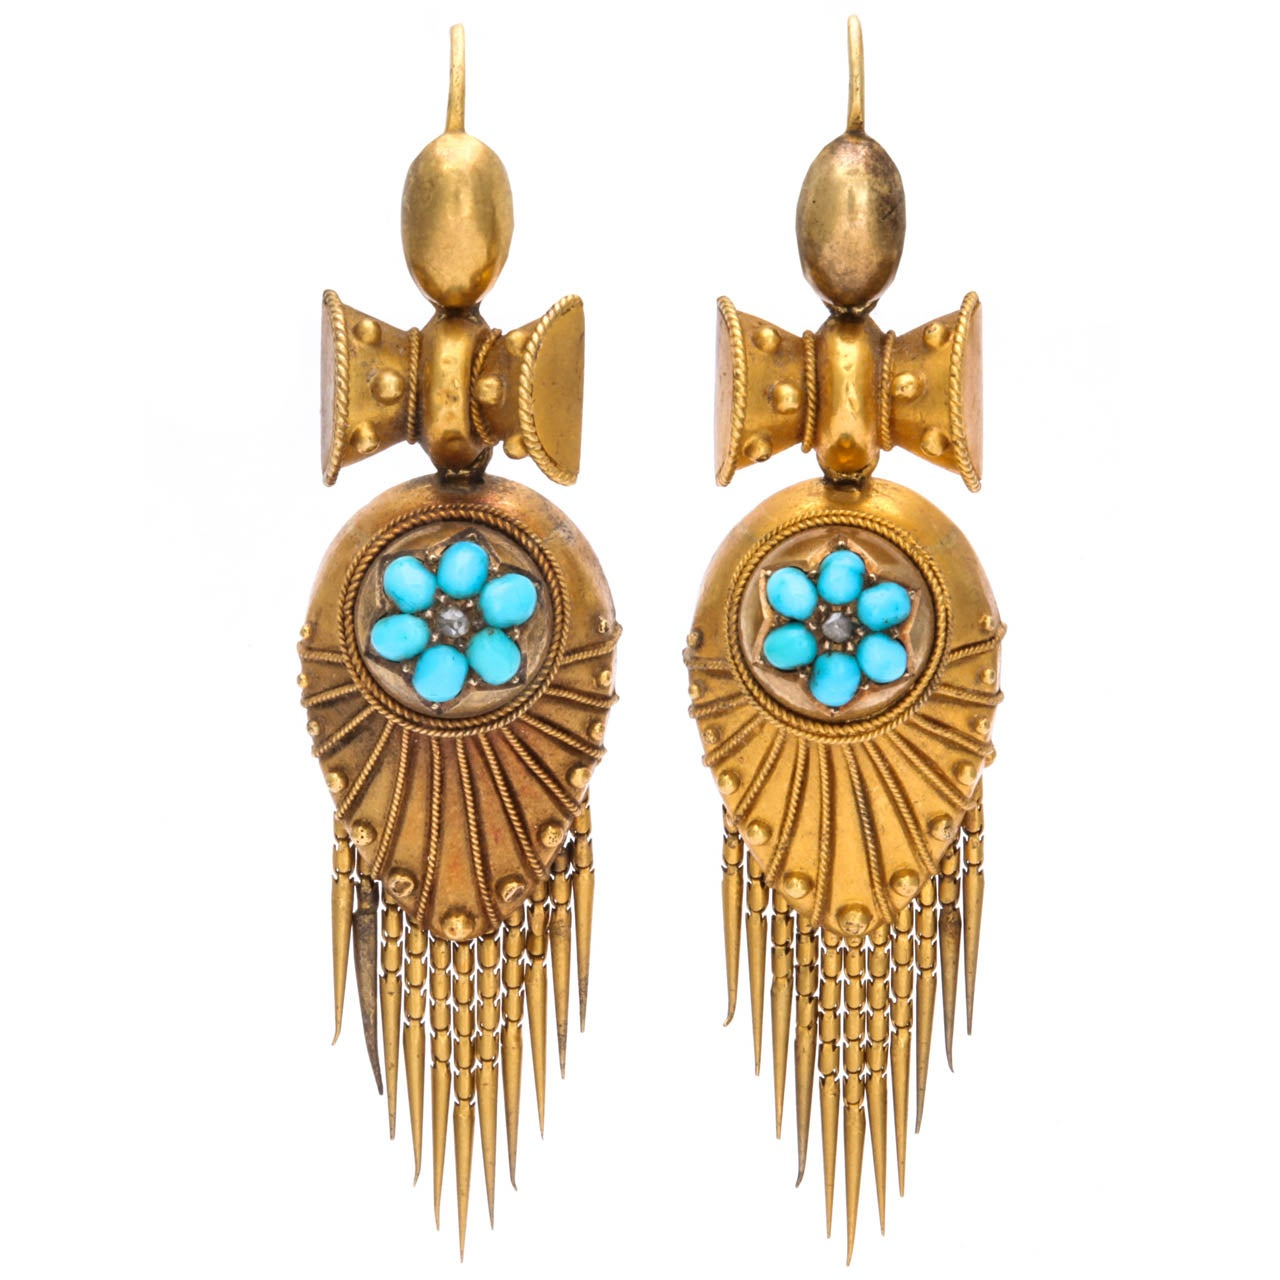 High Victorian Turquoise Gold Earrings At 1stdibs